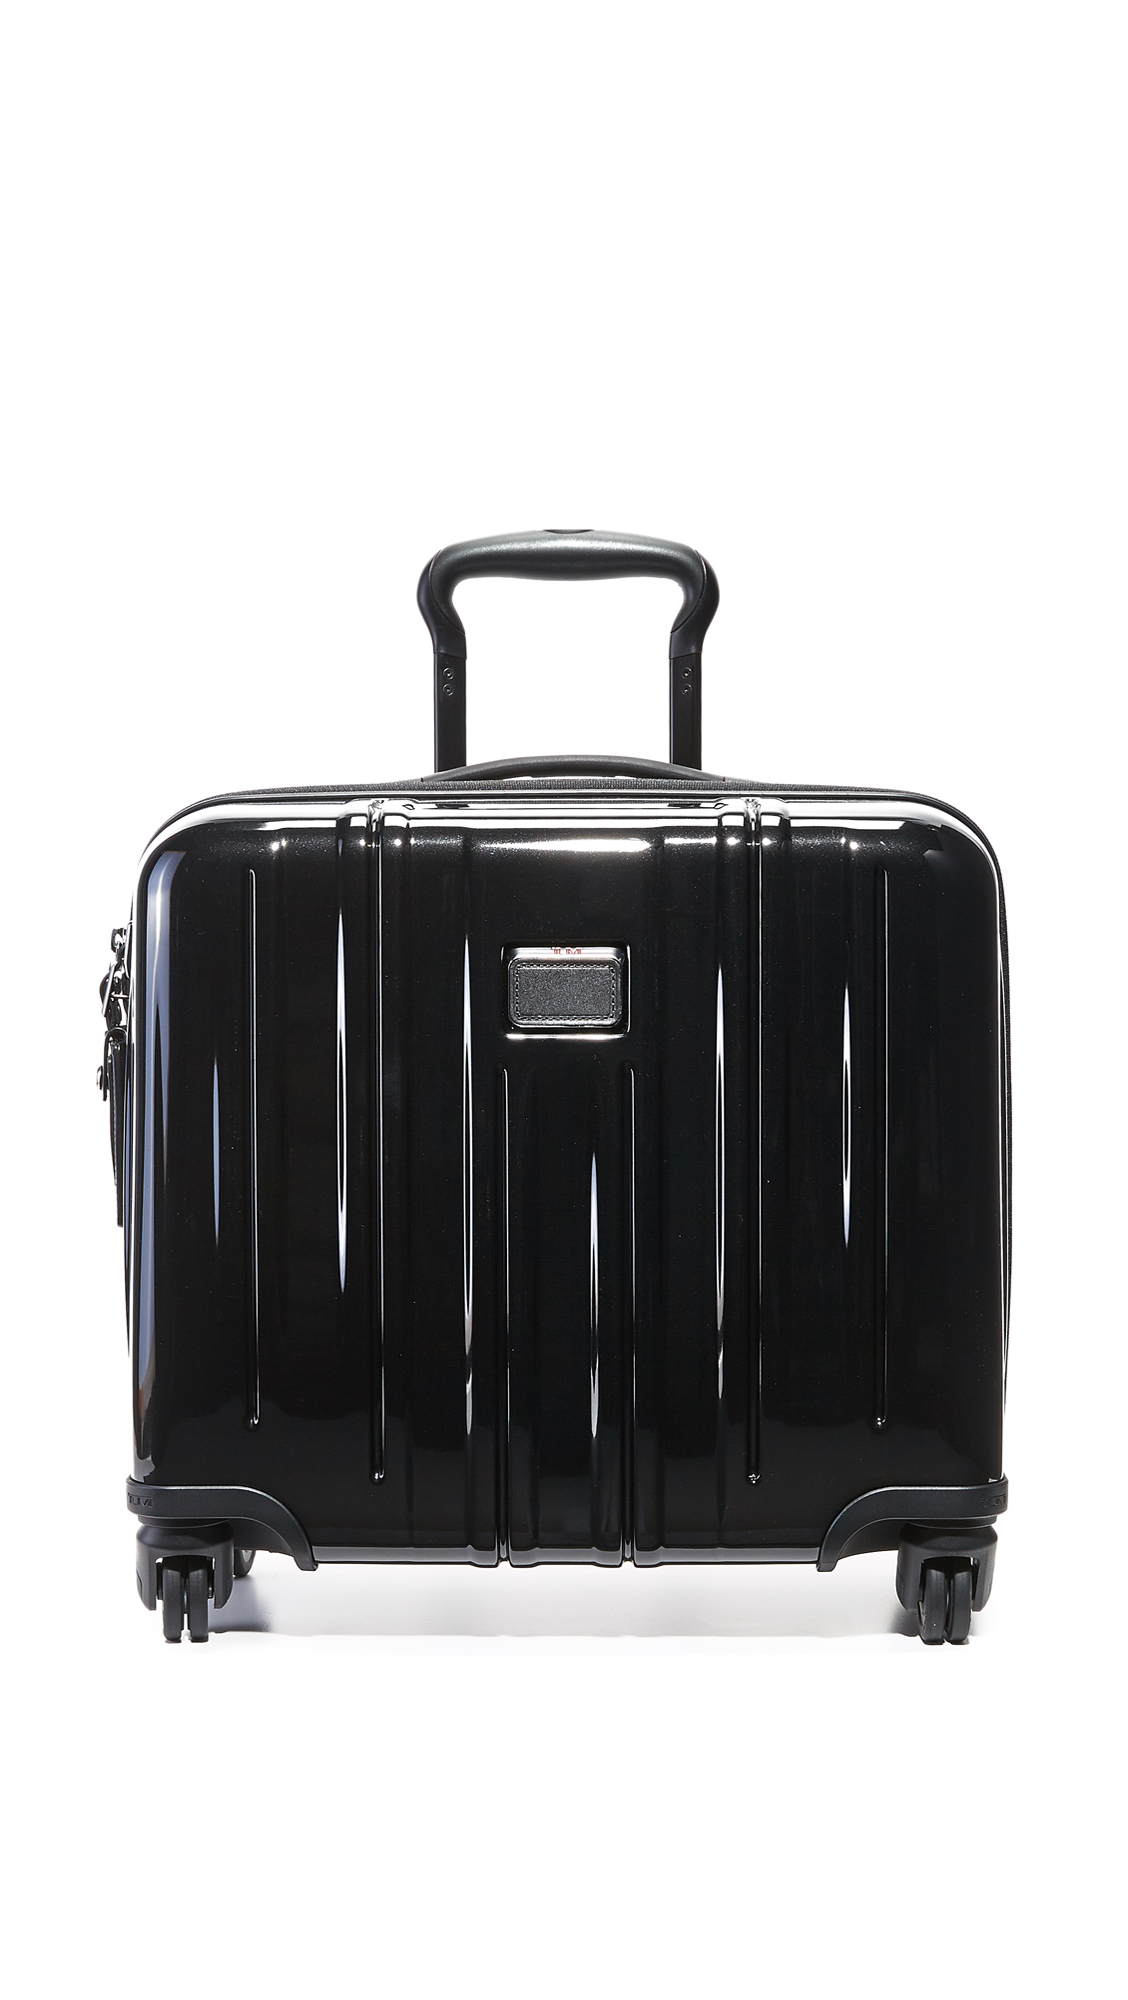 Tumi Tumi V3 Carry On Suitcase - Black